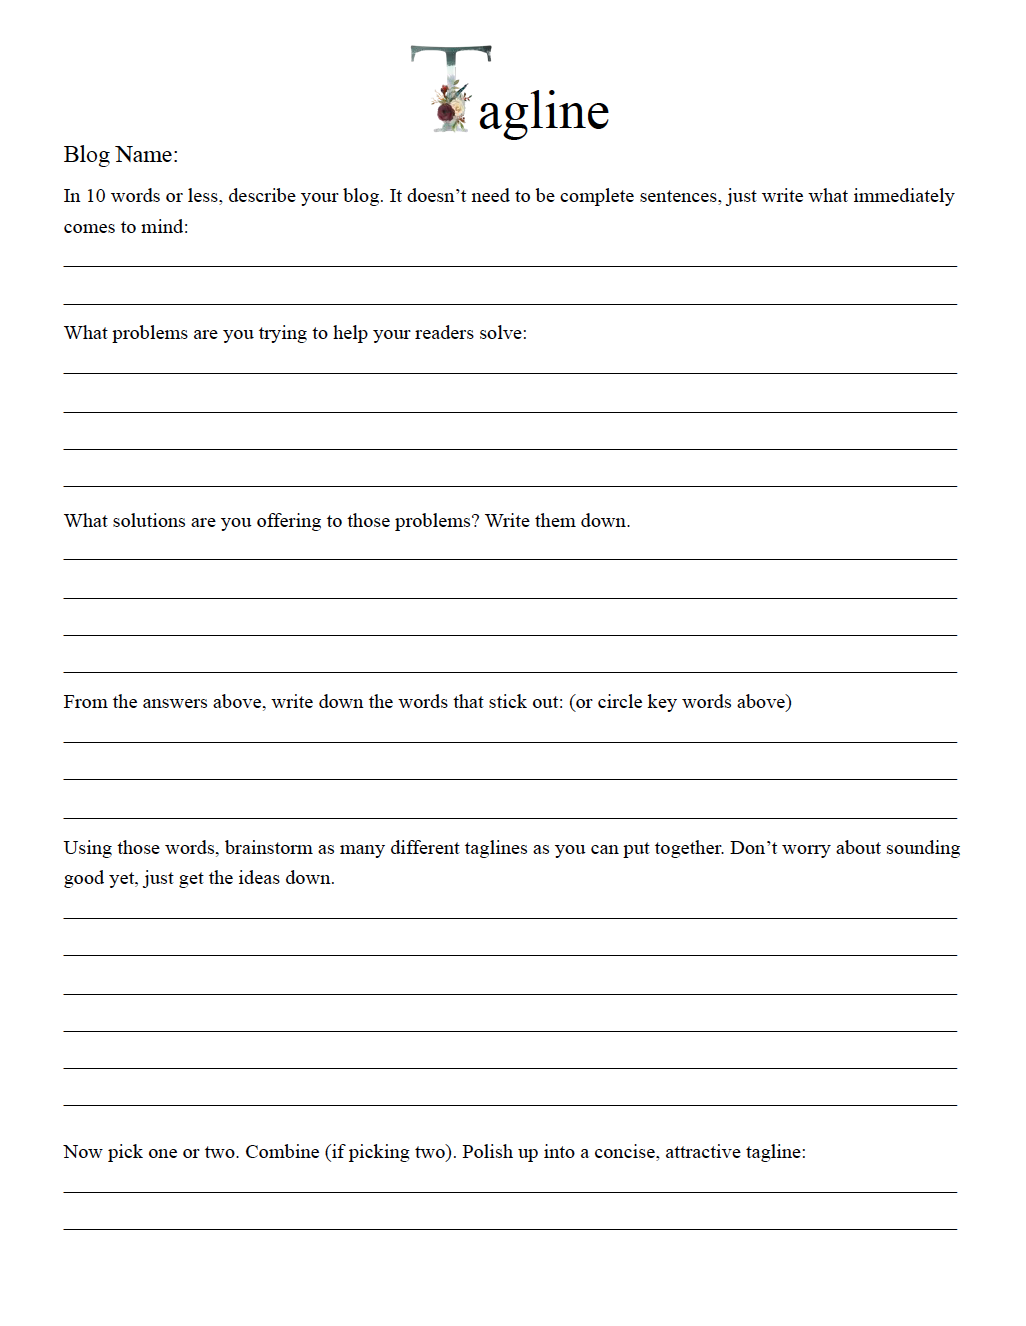 Blog Tagline worksheet. Step-by-step questions to help you develop your tagline.